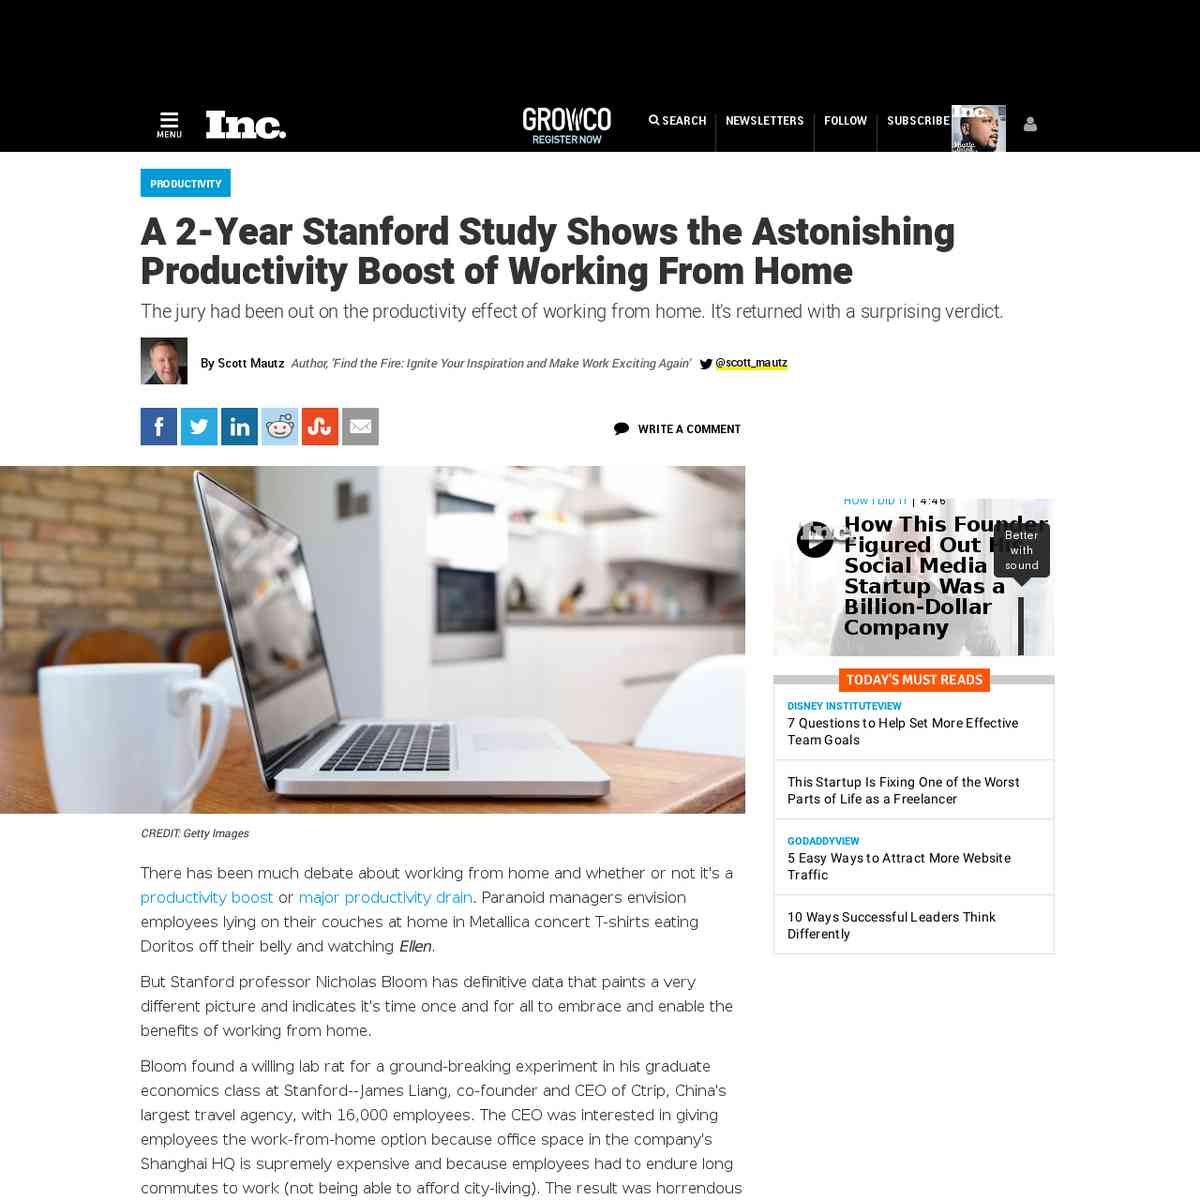 A 2-Year Stanford Study Shows the Astonishing Productivity Boost of Working From Home   Inc.com